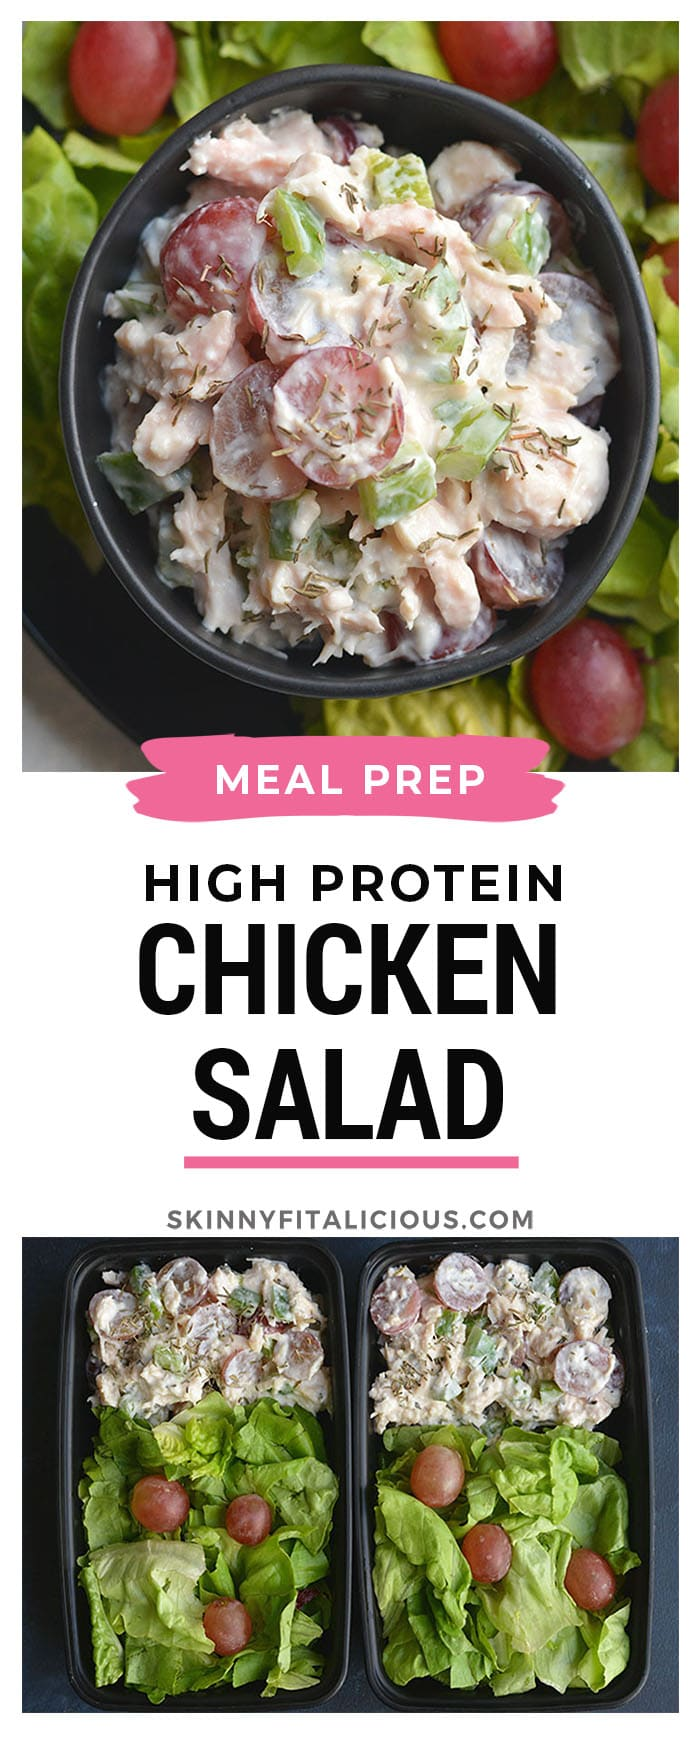 Meal Prep High Protein Chicken Salad! Made with Greek yogurt, grapes and bell peppers this recipe is healthy, easy mayo free and egg free. Great for a quick meal, light lunch or appetizer. Low Carb + Gluten Free + Low Calorie